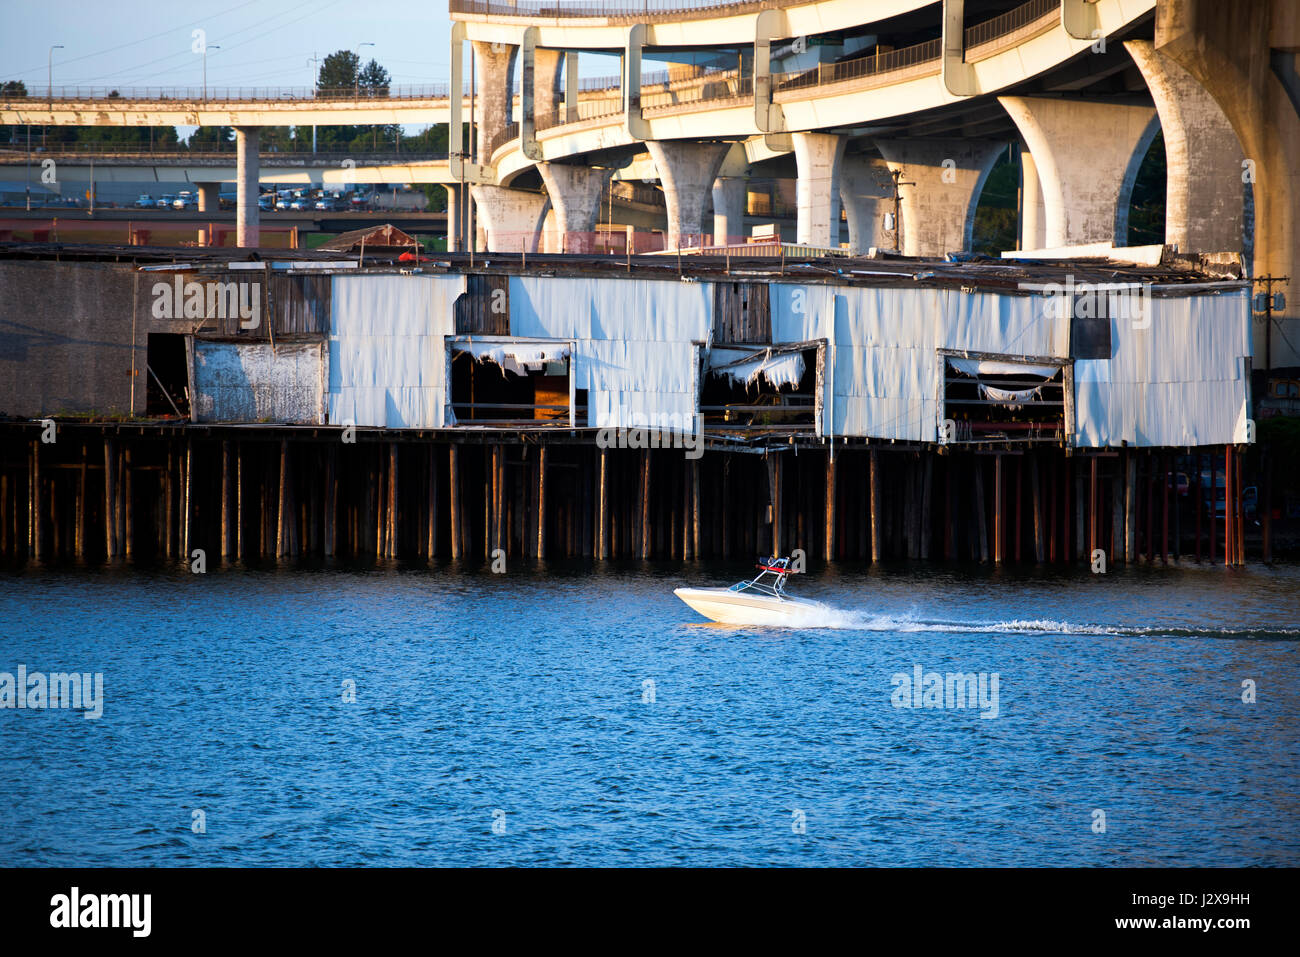 Motorboat on the Willamette River passes by the old docks with wooden props and white textile panels under the winding - Stock Image